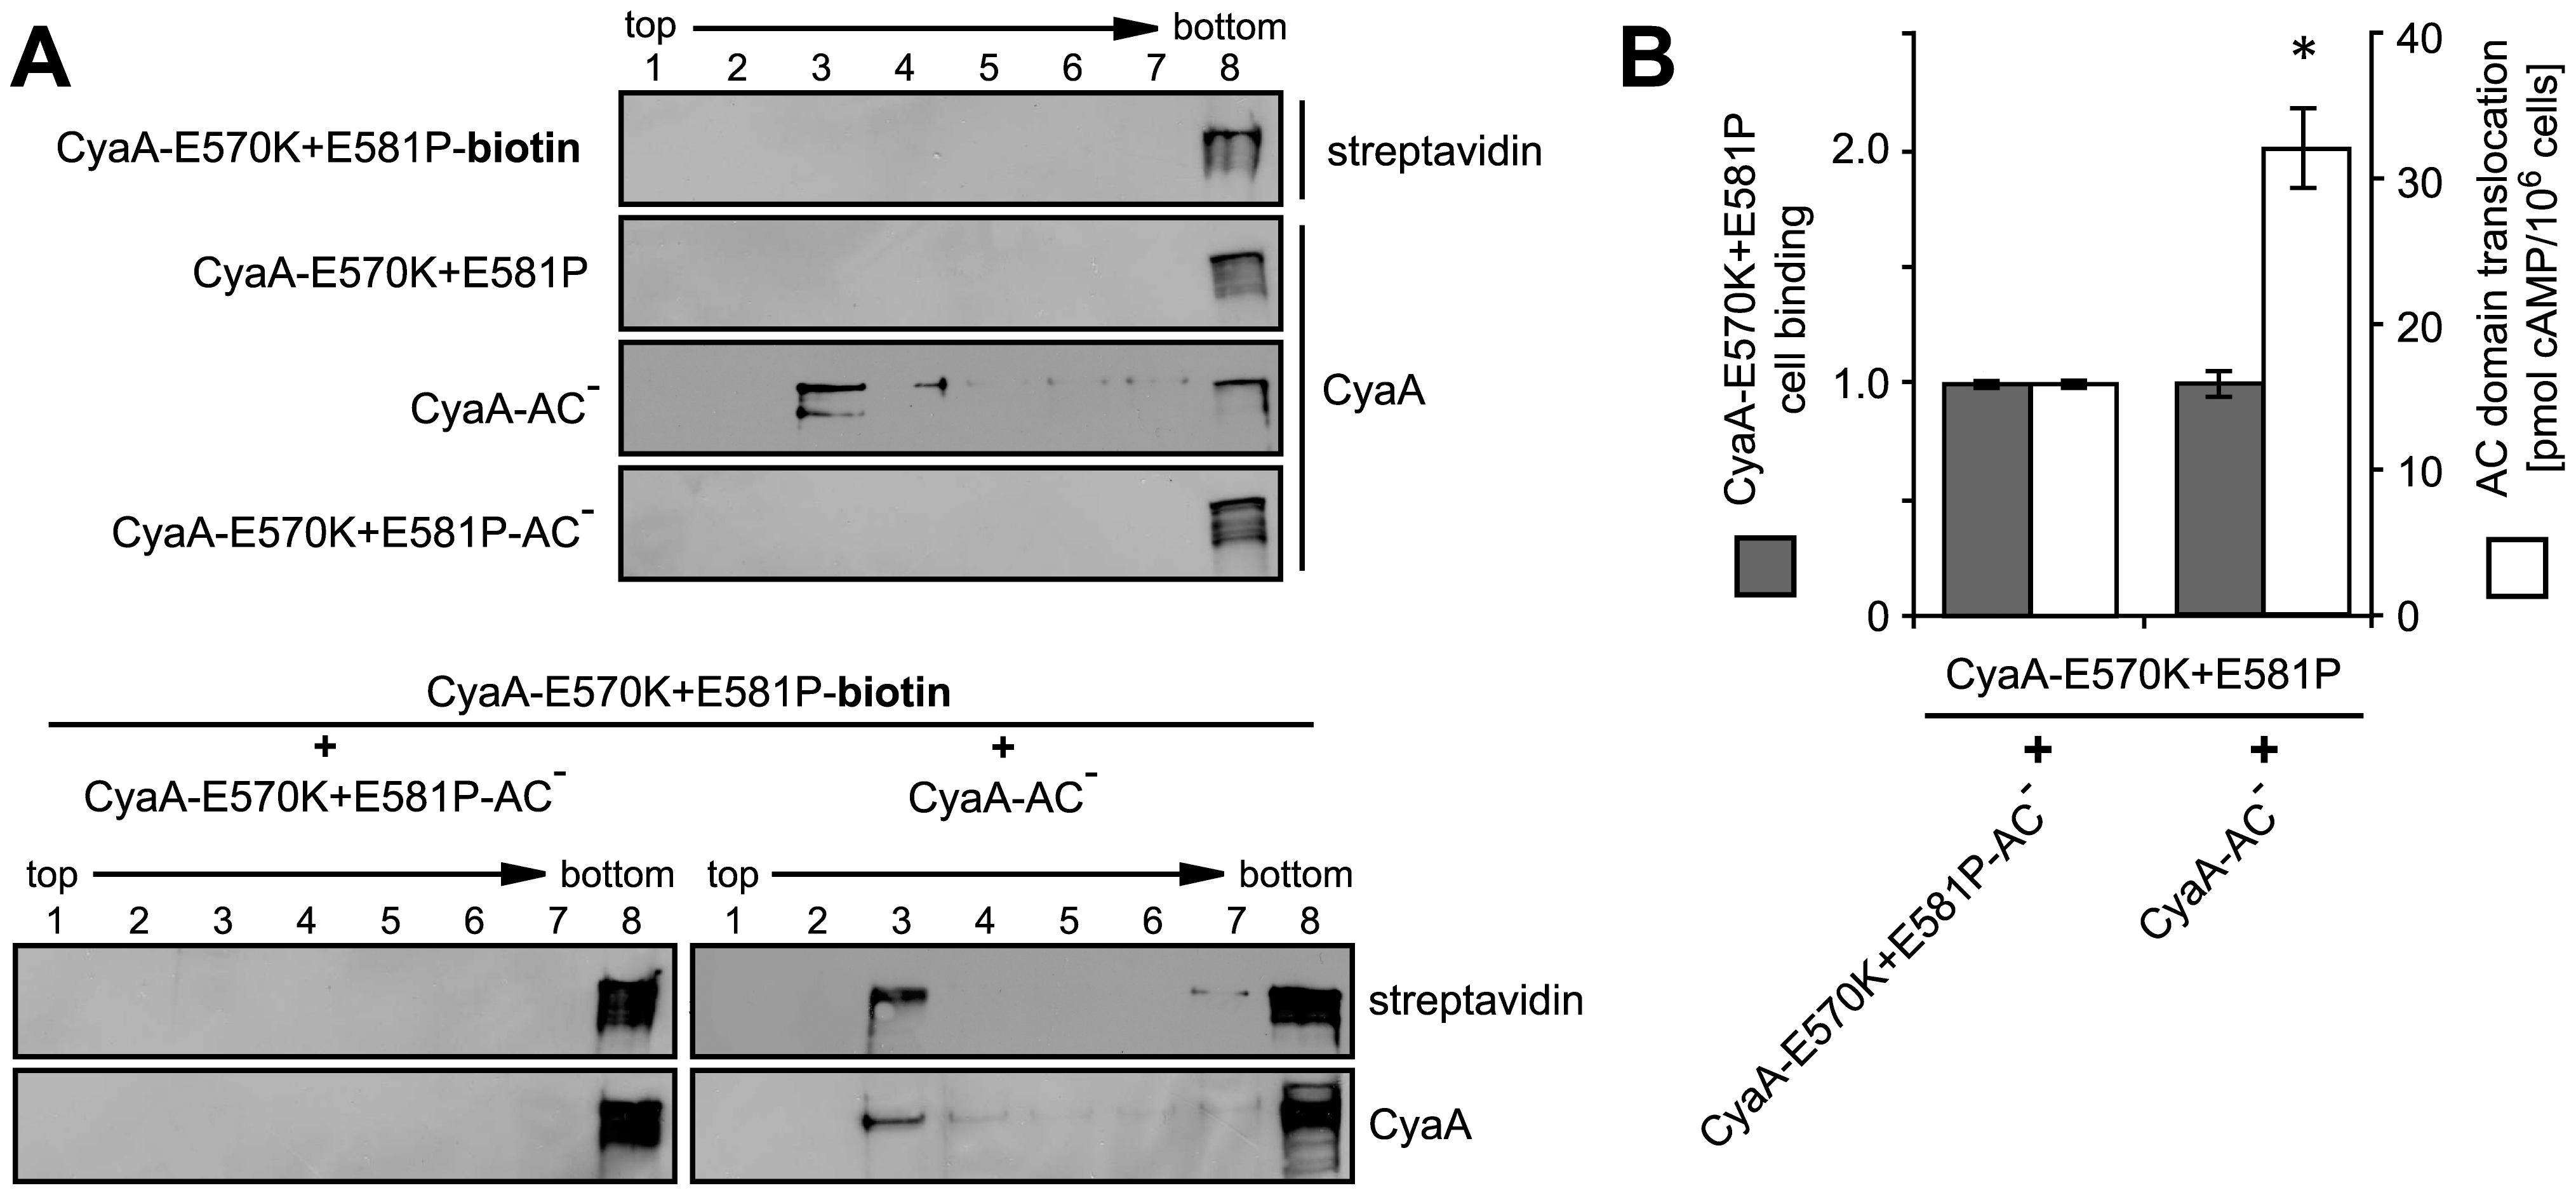 AC domain of CyaA translocates across cellular membrane from lipid rafts.